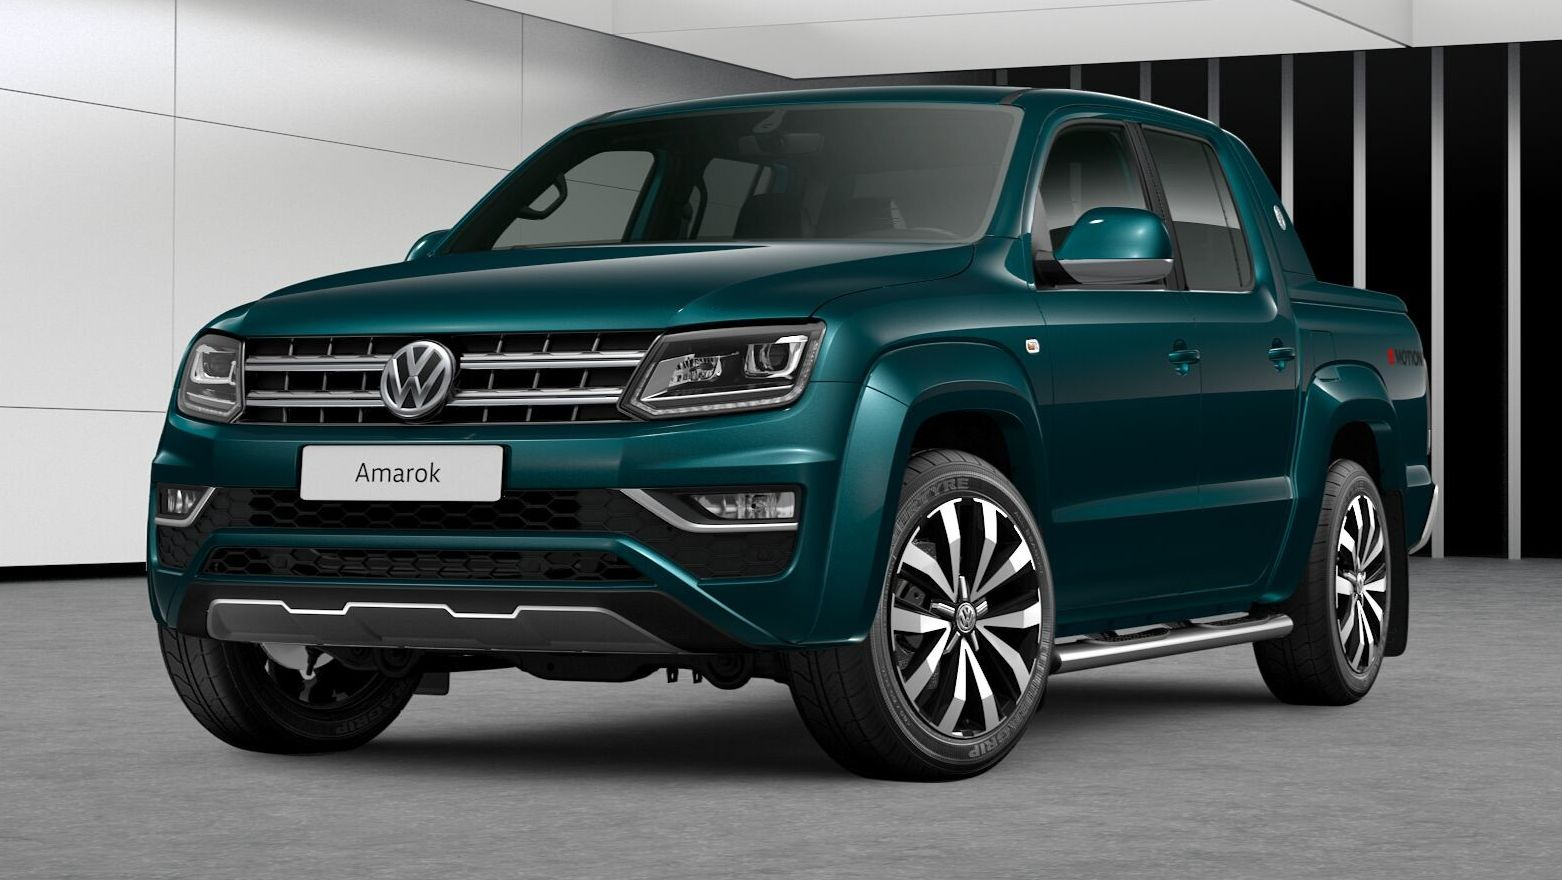 Volkswagen Amarok Pickup Truck Could Come to the US ...